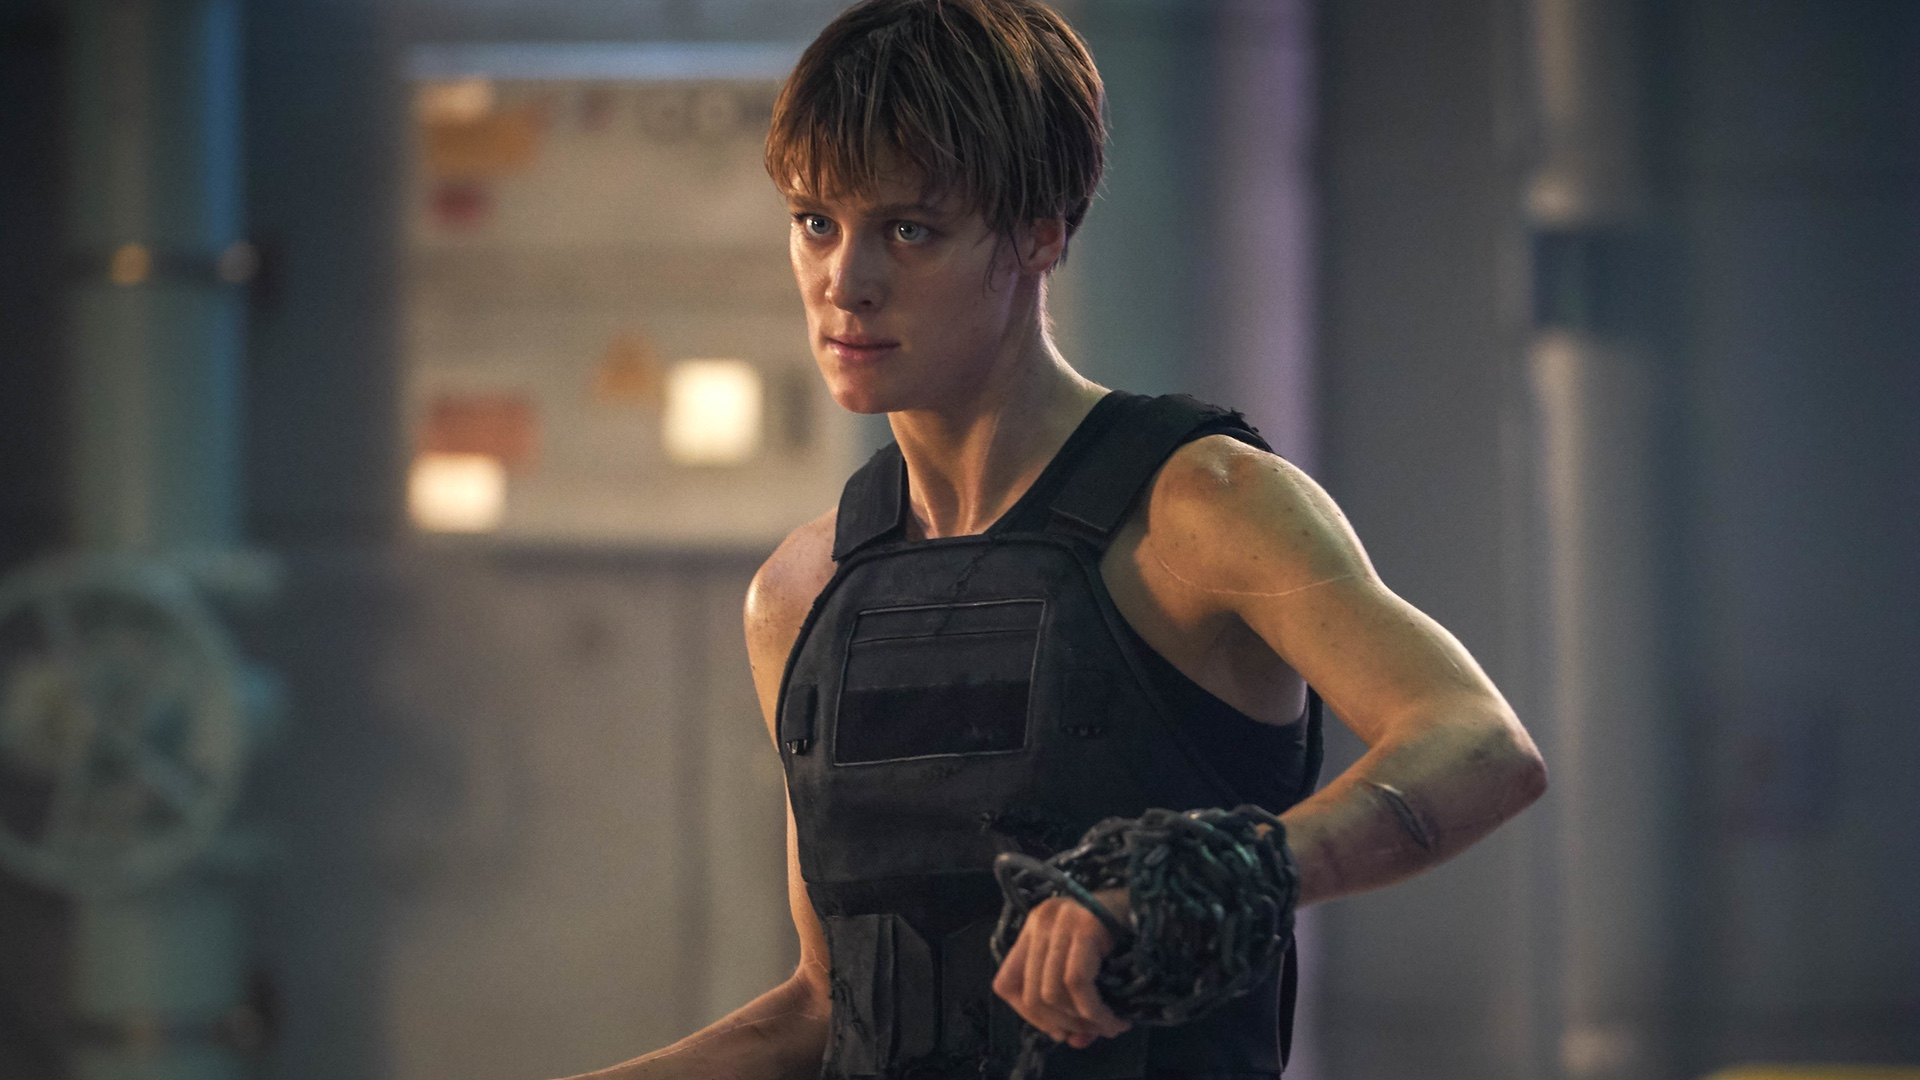 director-tim-miller-shares-new-terminator-dark-fate-details-and-explains-mackenzie-davis-will-scare-the-f-out-of-misogynists-social.jpg